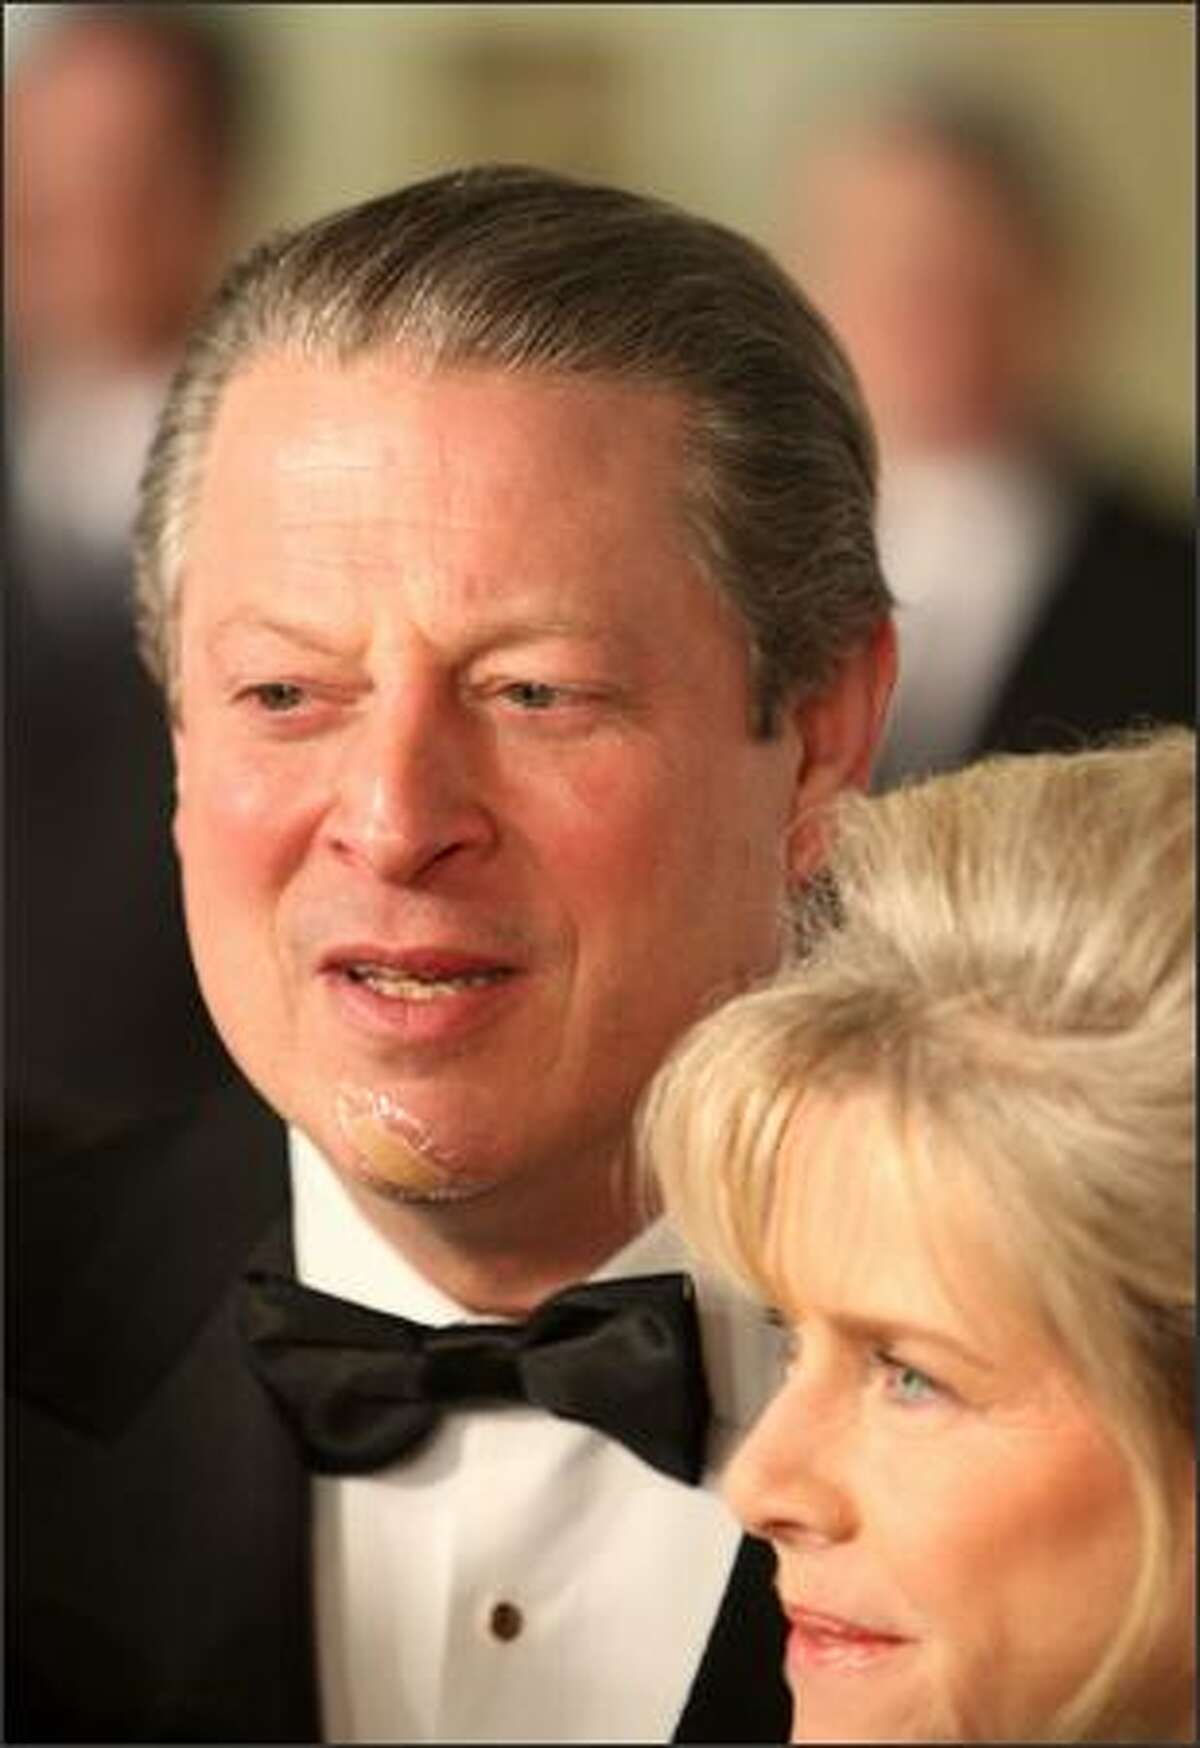 Left to right, Former US vice-president Al Gore and wife Tipper Gore attend the 35th International Emmy Awards Gala at the New York Hilton on Monday in New York City.